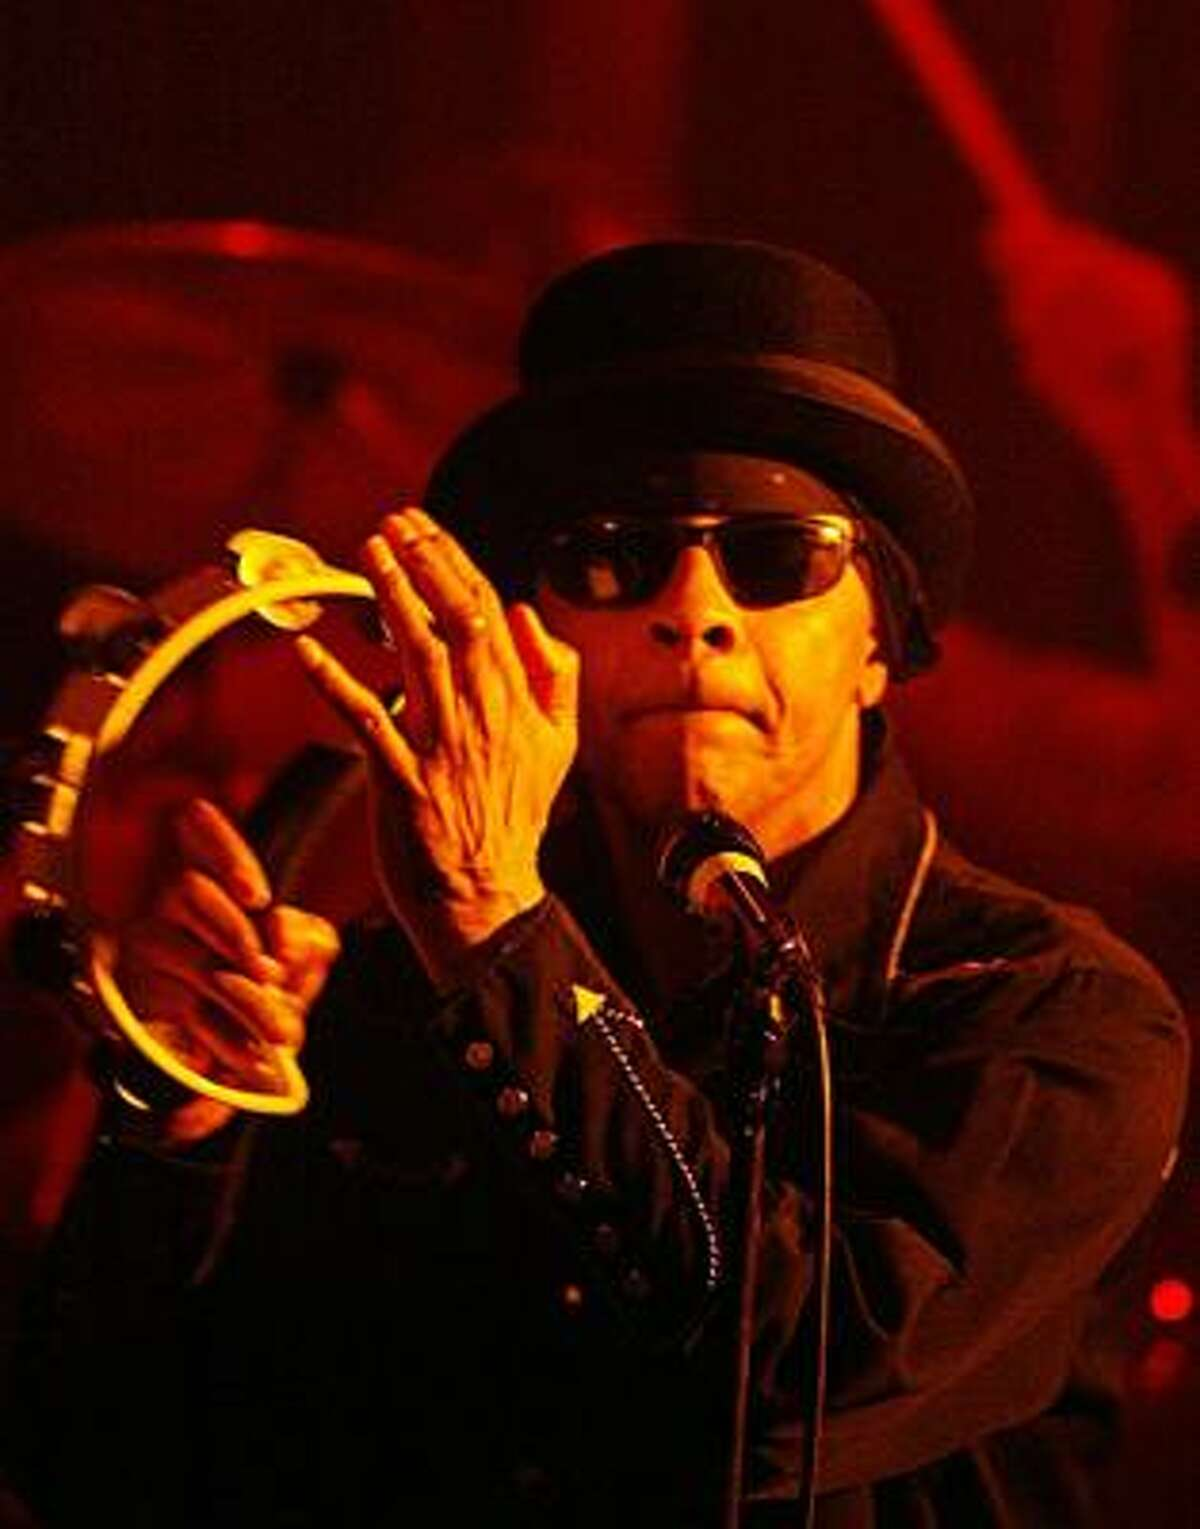 Arthur Lee, the eccentric singer/guitarist with influential 1960s rock band Love, performs in the Sala Jam in Bergara, northern Spain, in this March 28, 2004 file photo.